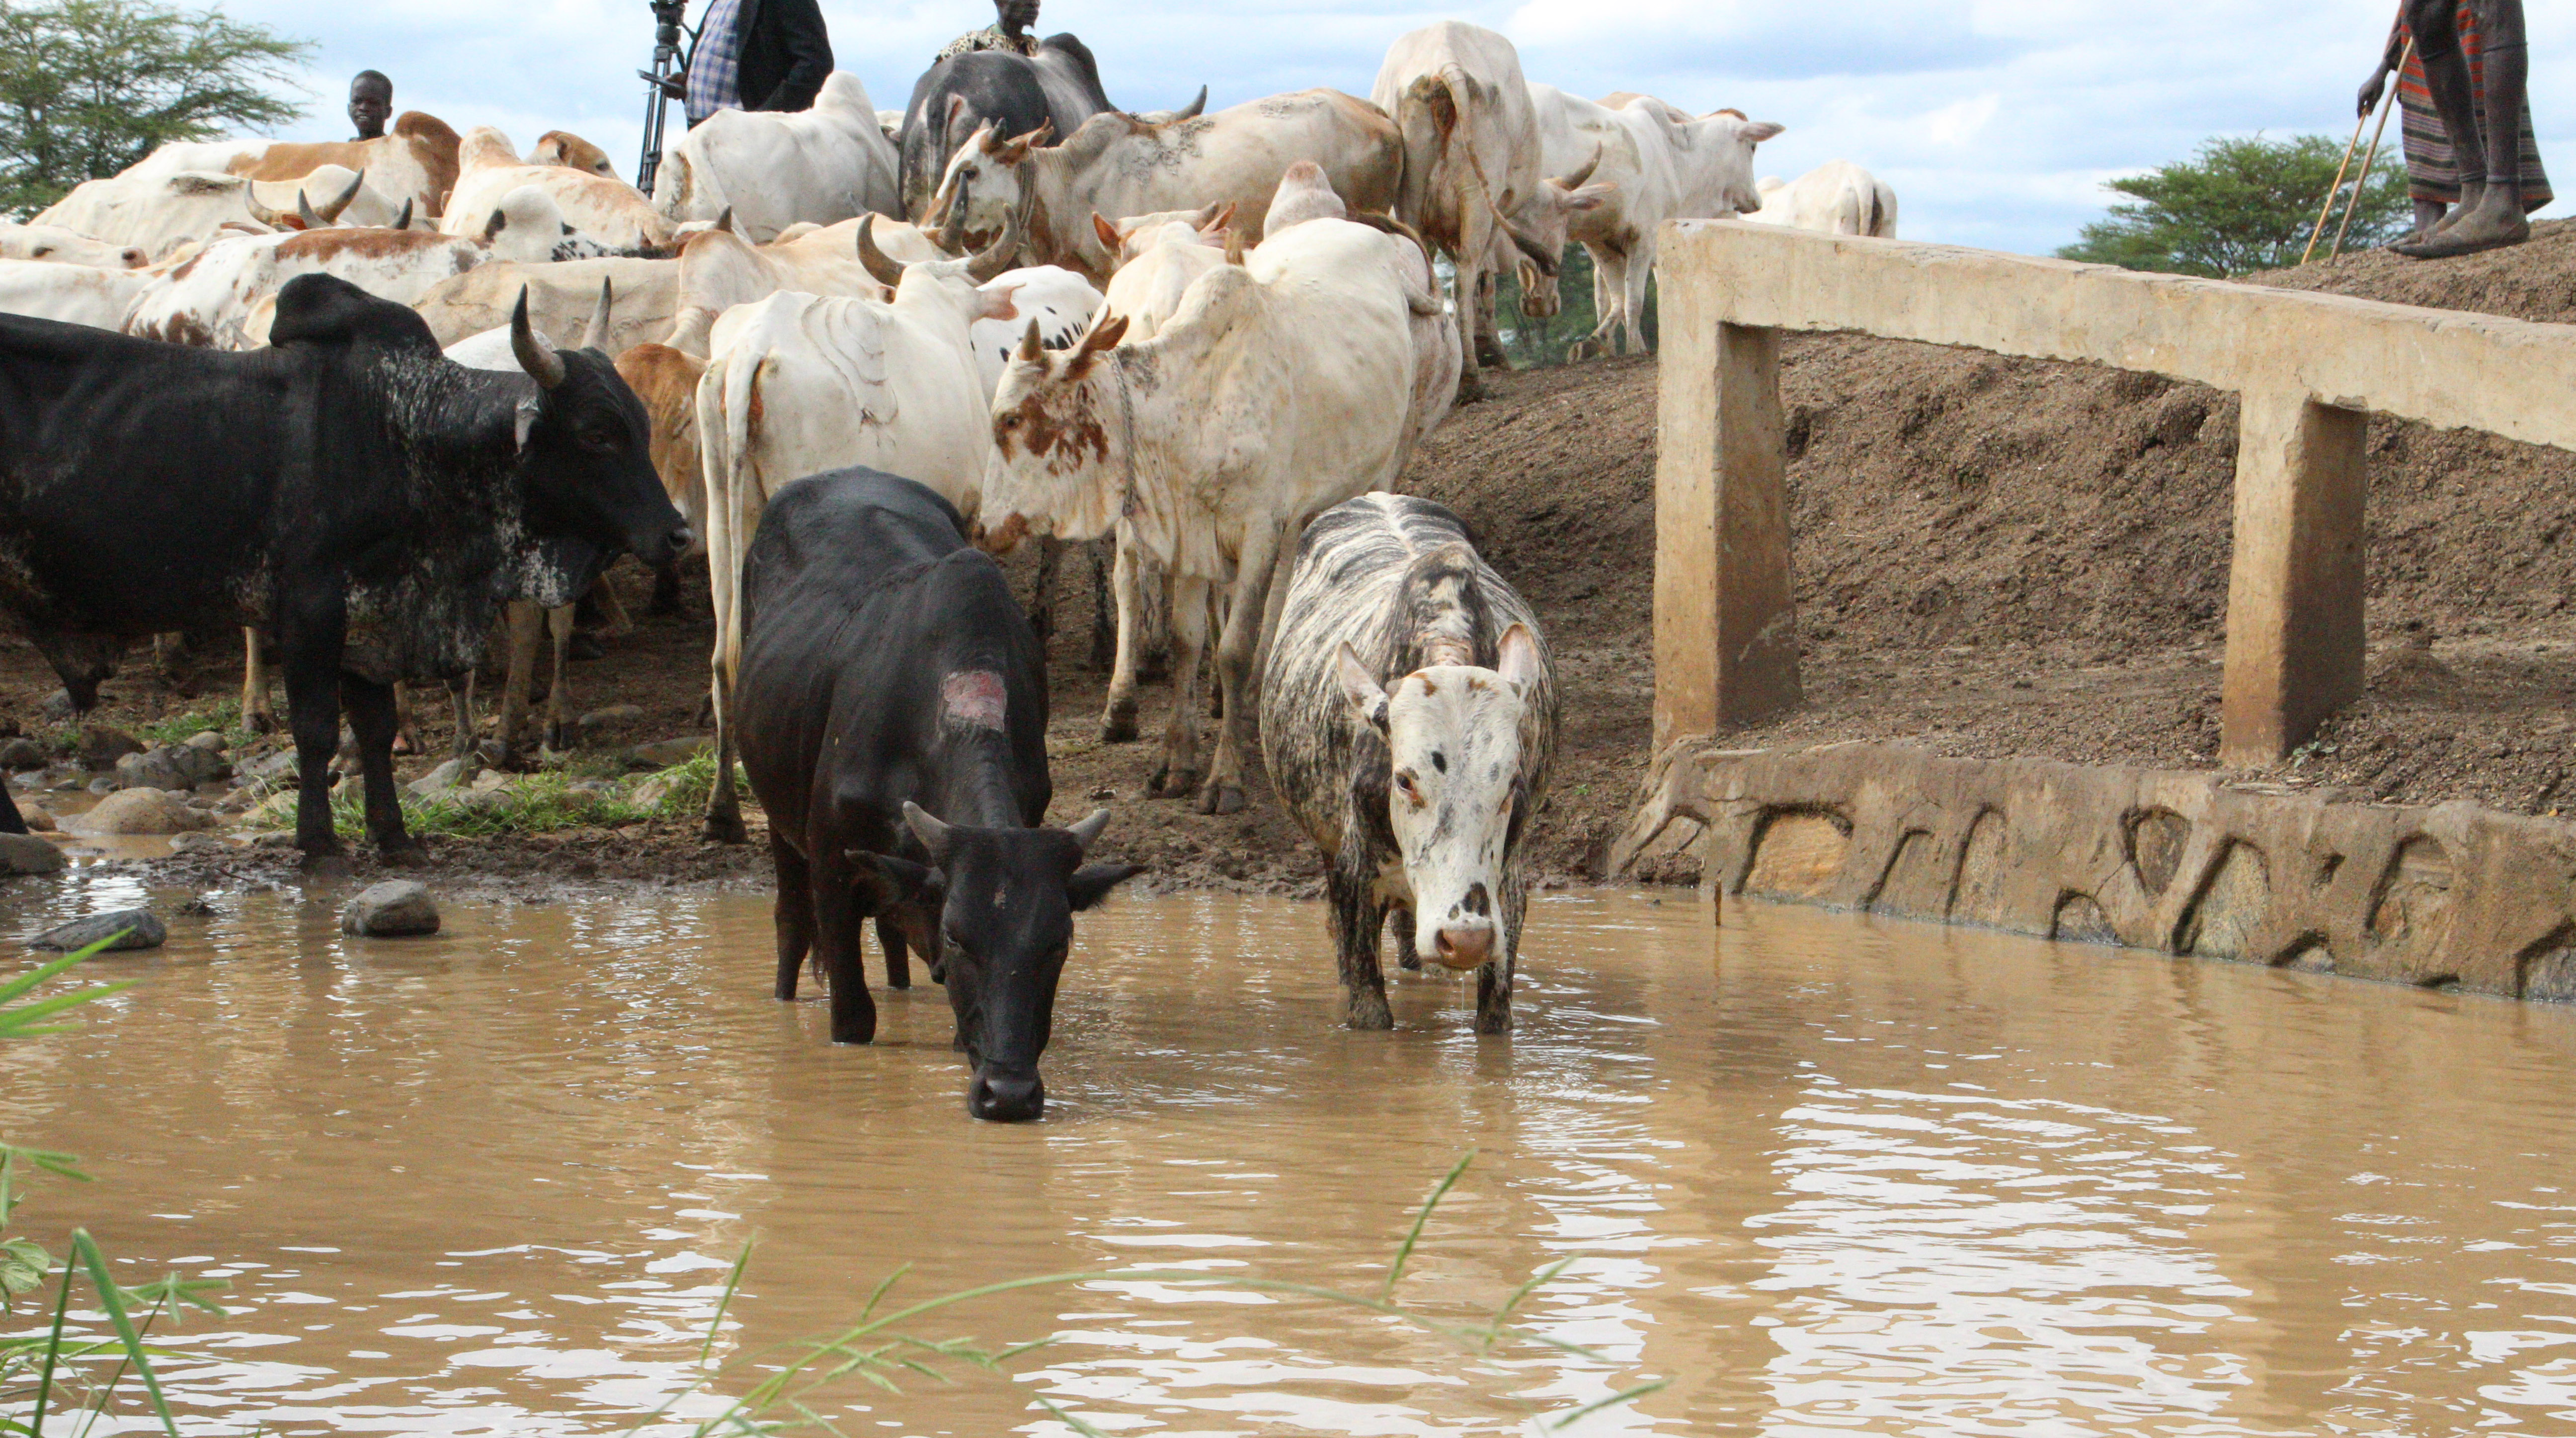 Cattle walking in a body of water.